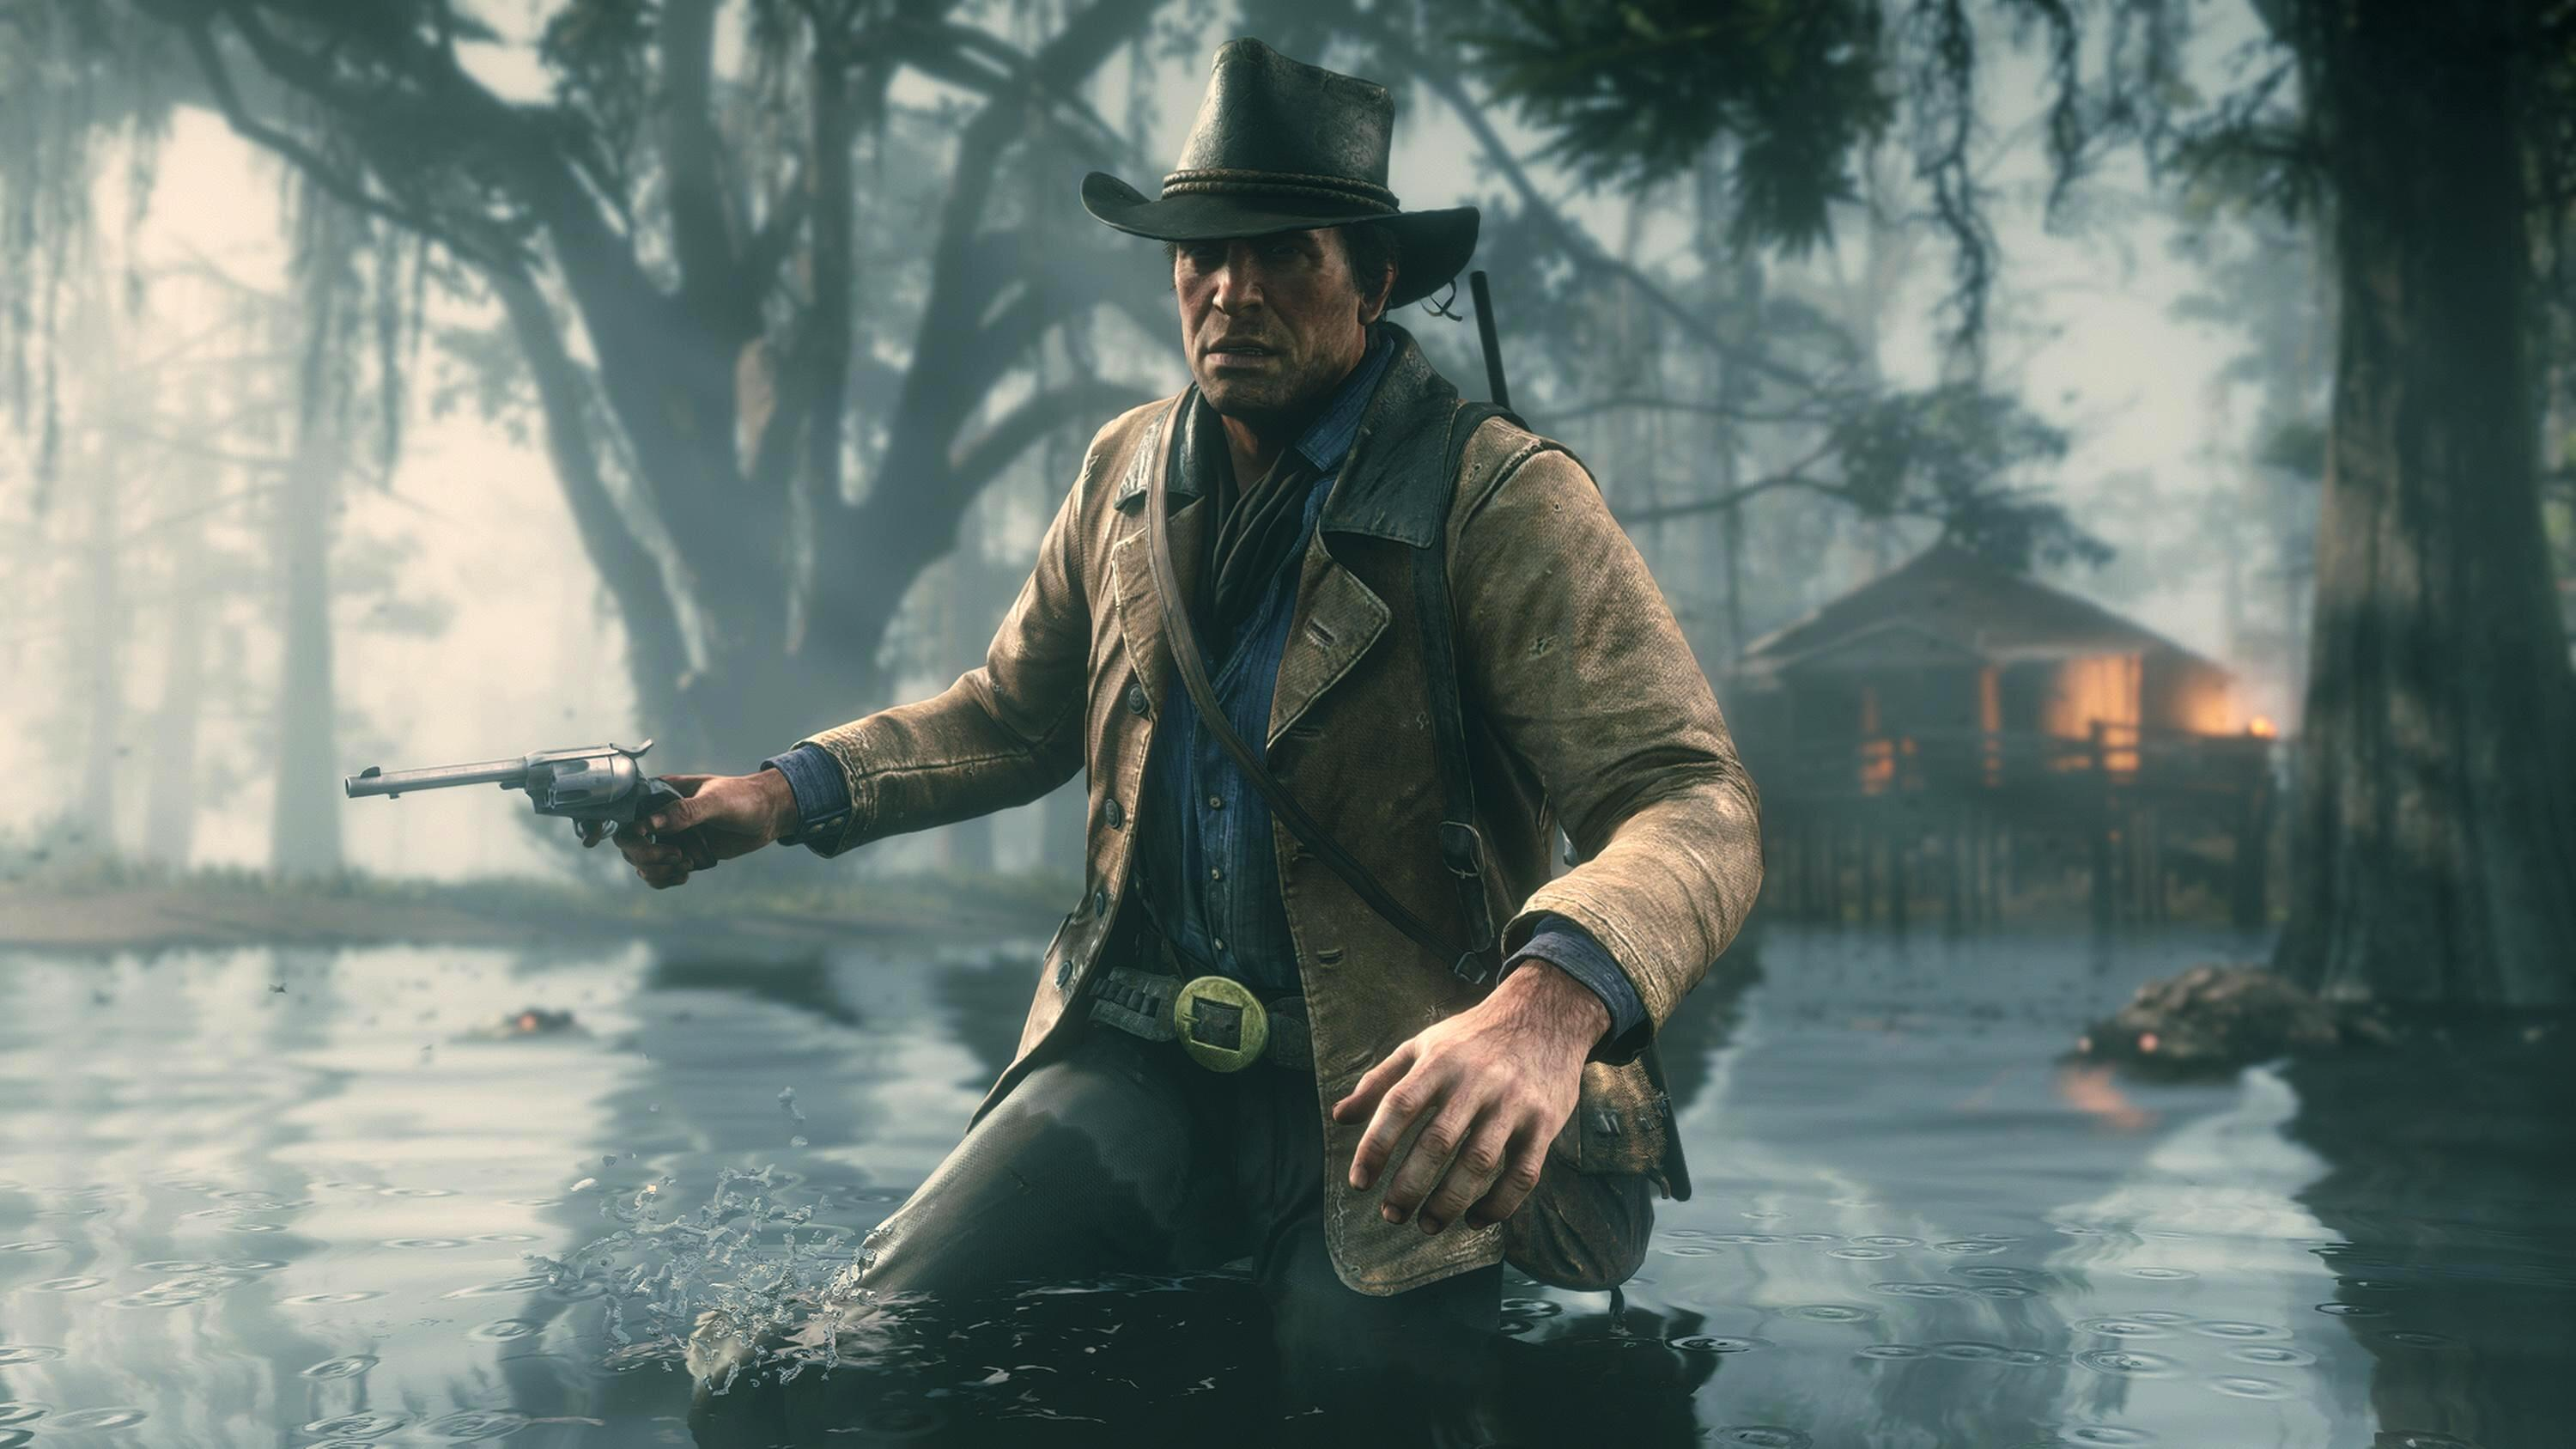 Bild zu Red Dead Redemption 2, RDR2, Rockstar Games, GTA, Cowboy, Wilder Westen, Western, PC, Xbox One, PS4